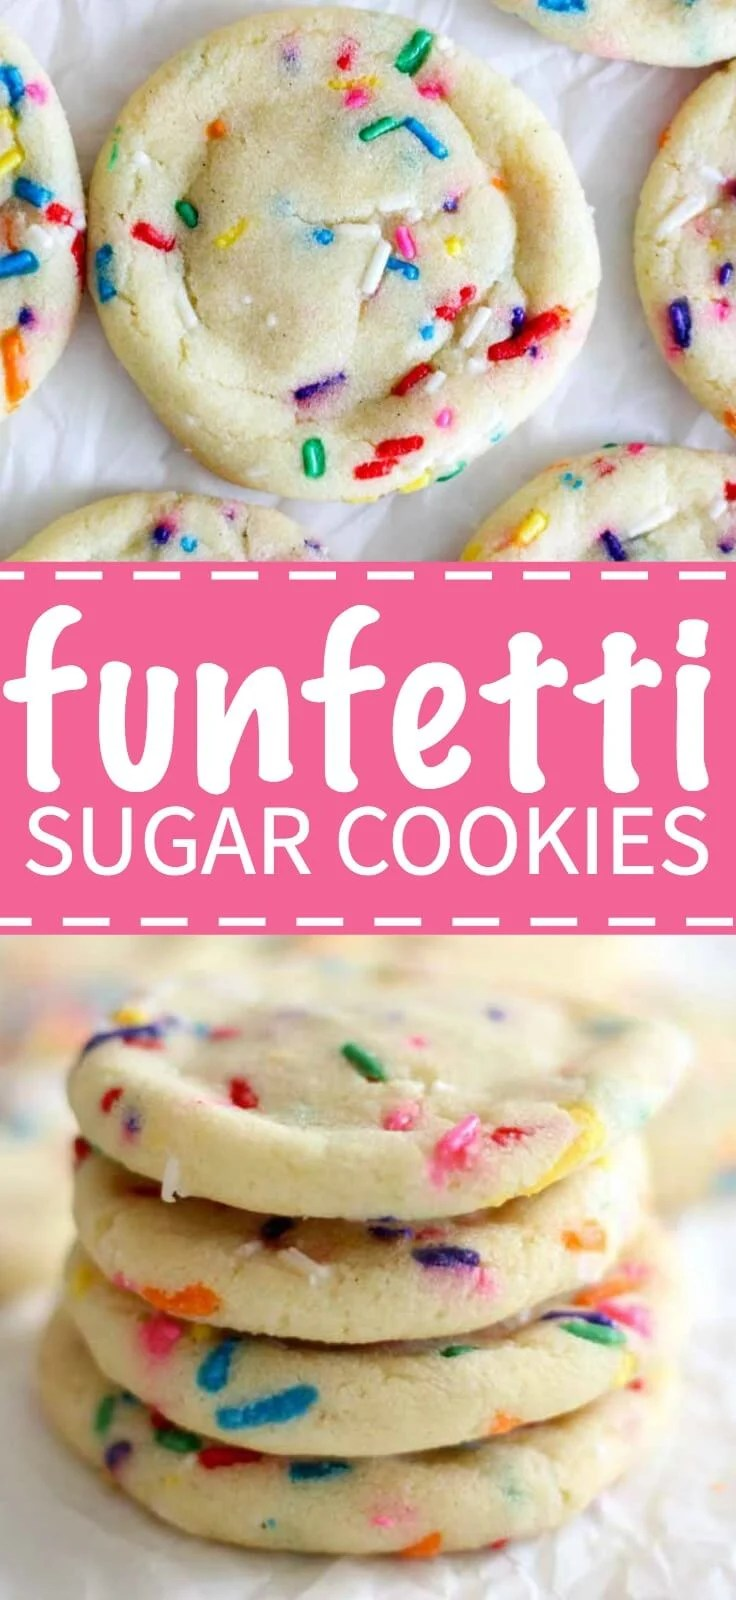 Sprinkles make everything (and life) better. These funfetti sugar cookies are a sprinkle dream come true. They taste just like your favorite Funfetti cake mix in cookie form.